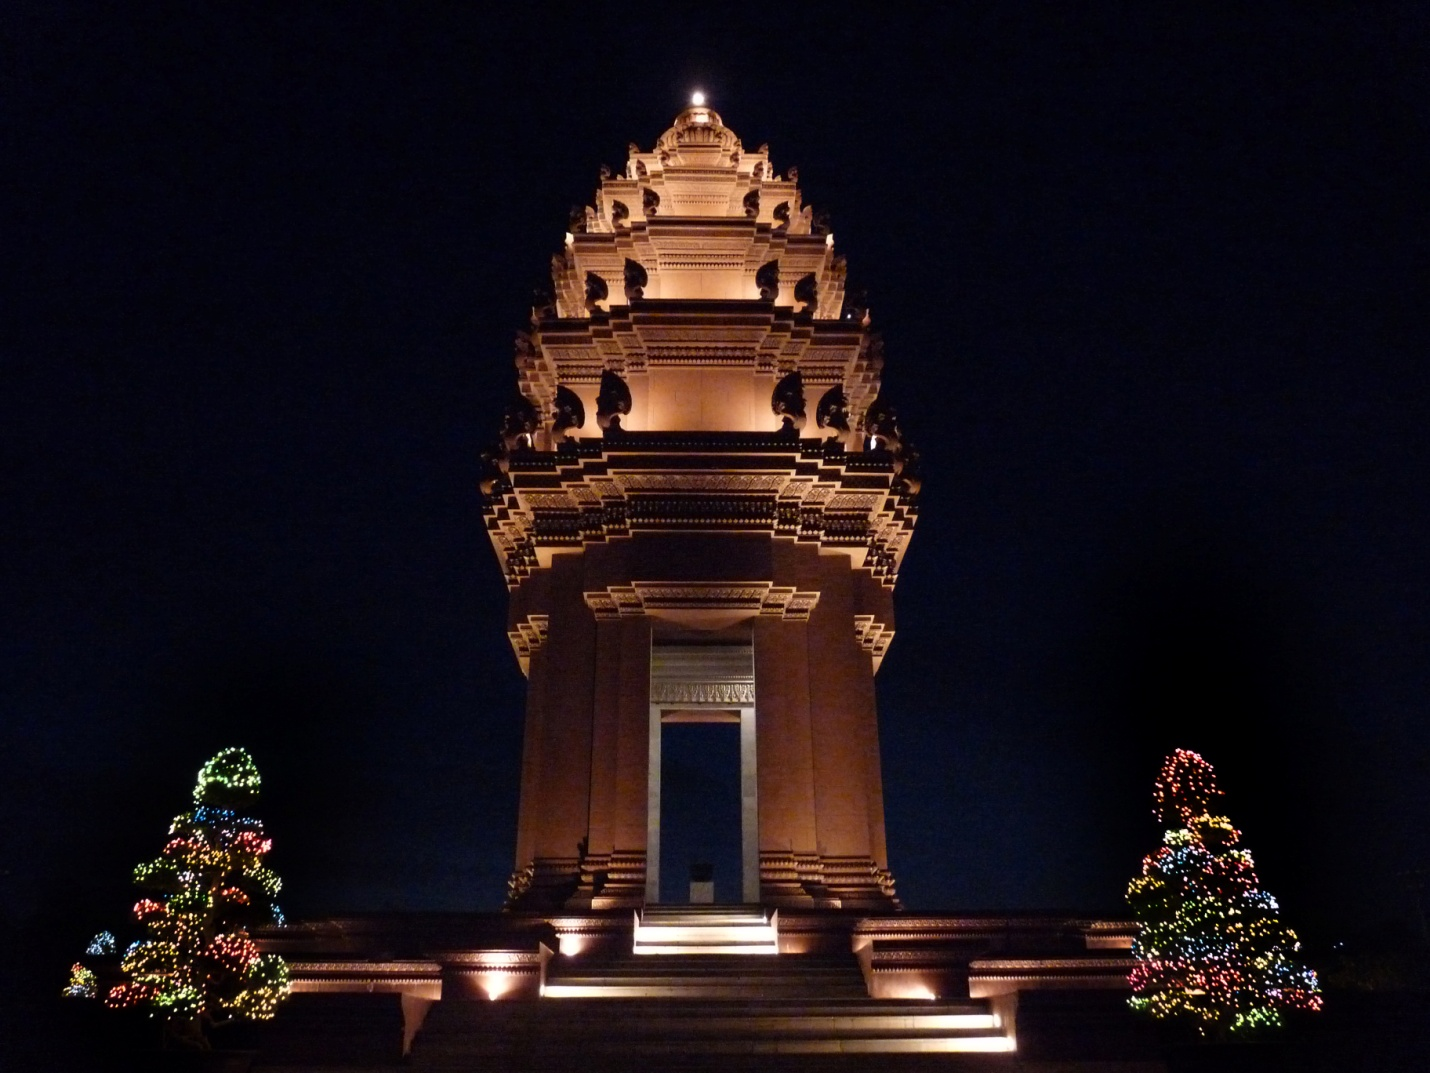 Independence Monument at night